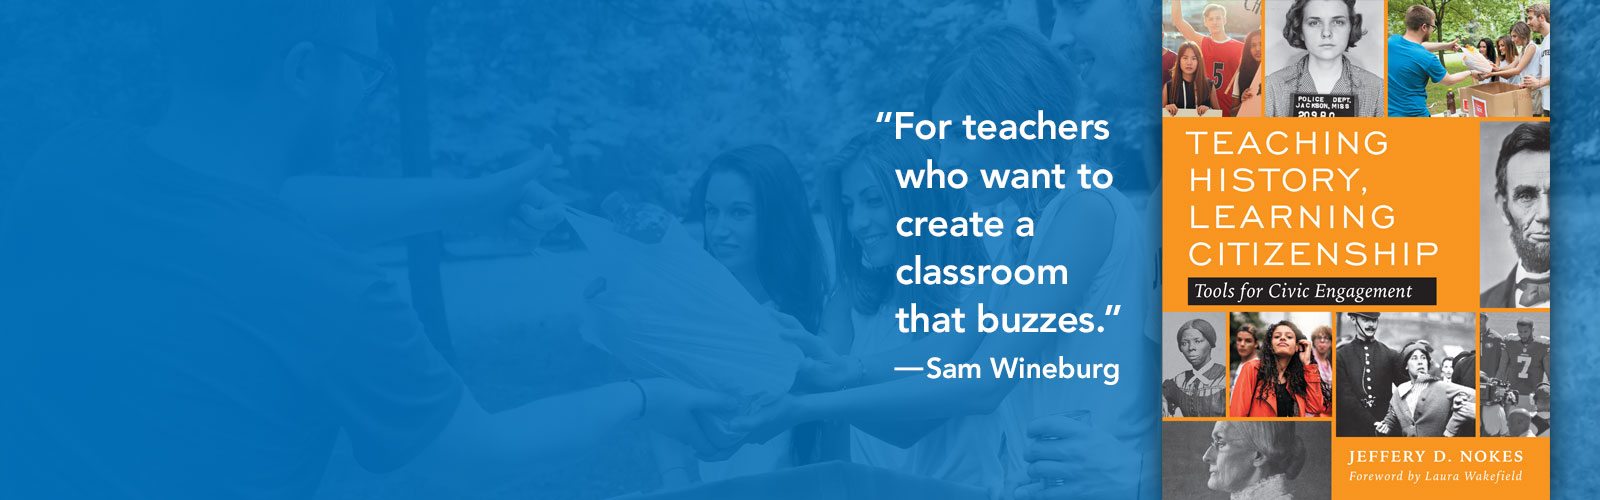 """For teachers who want to create a classroom that buzzes."" —Sam Wineburg"